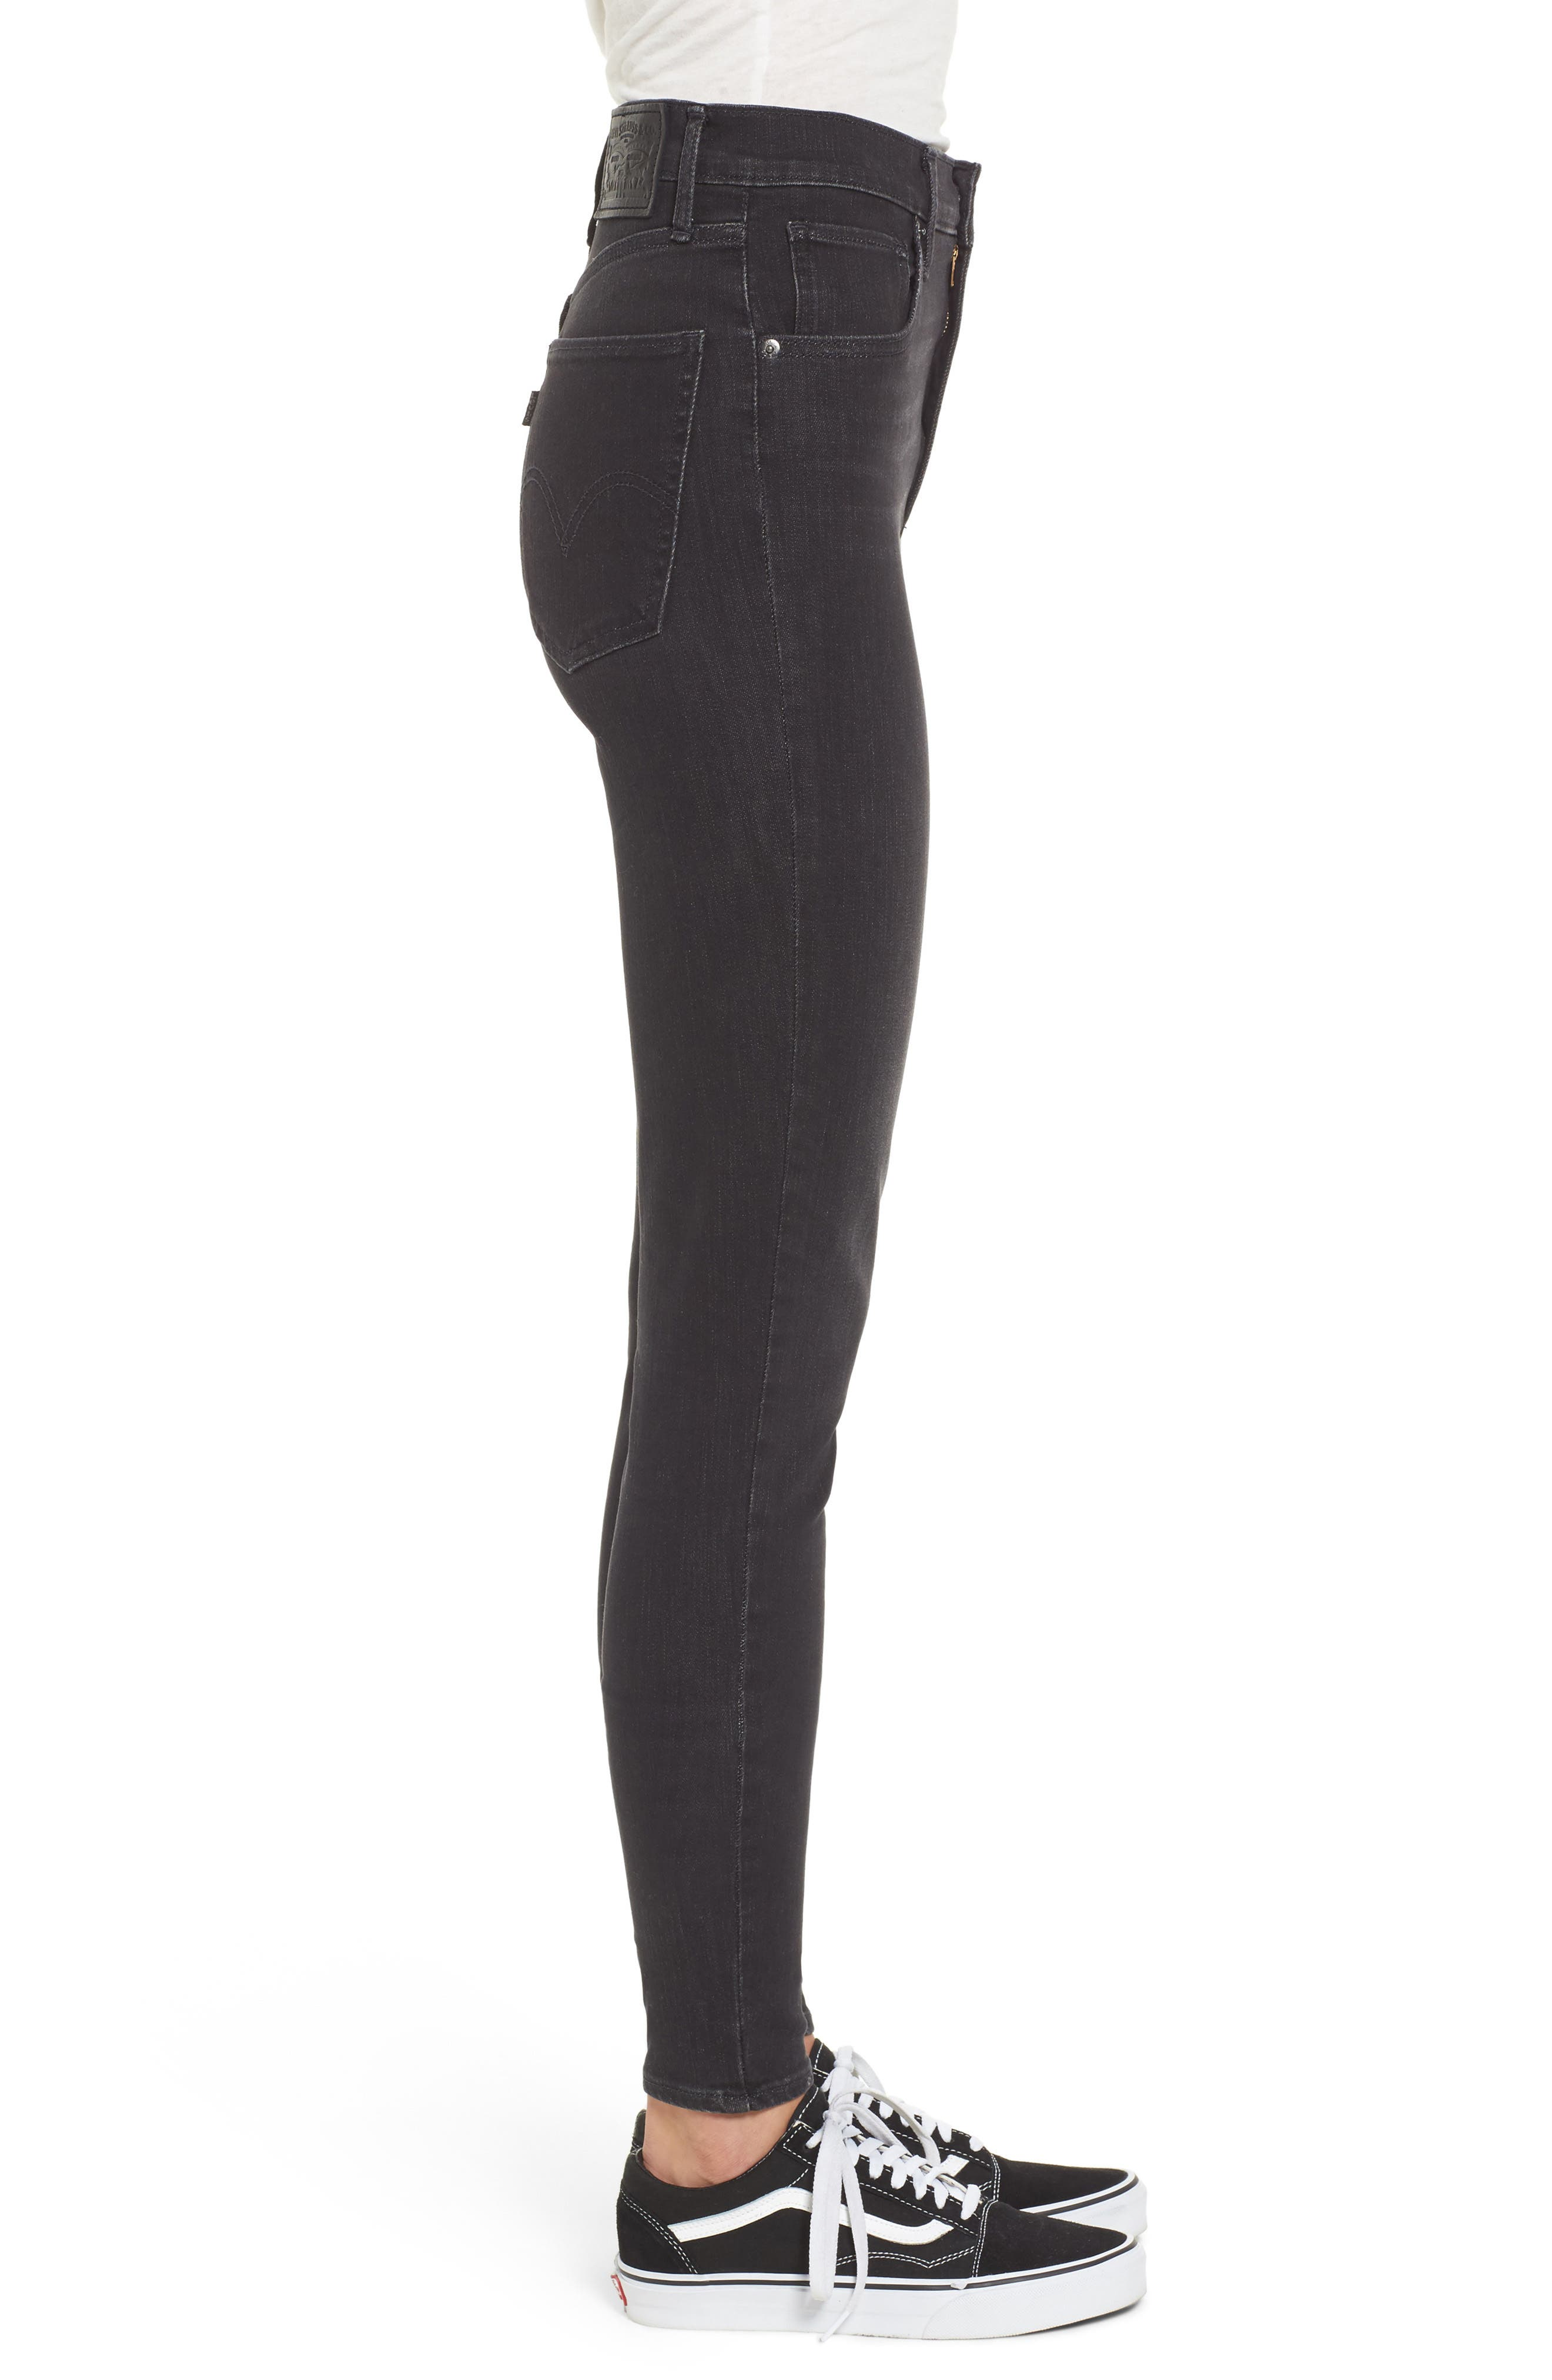 Mile High High Rise Skinny Jeans,                             Alternate thumbnail 3, color,                             Faded Ink